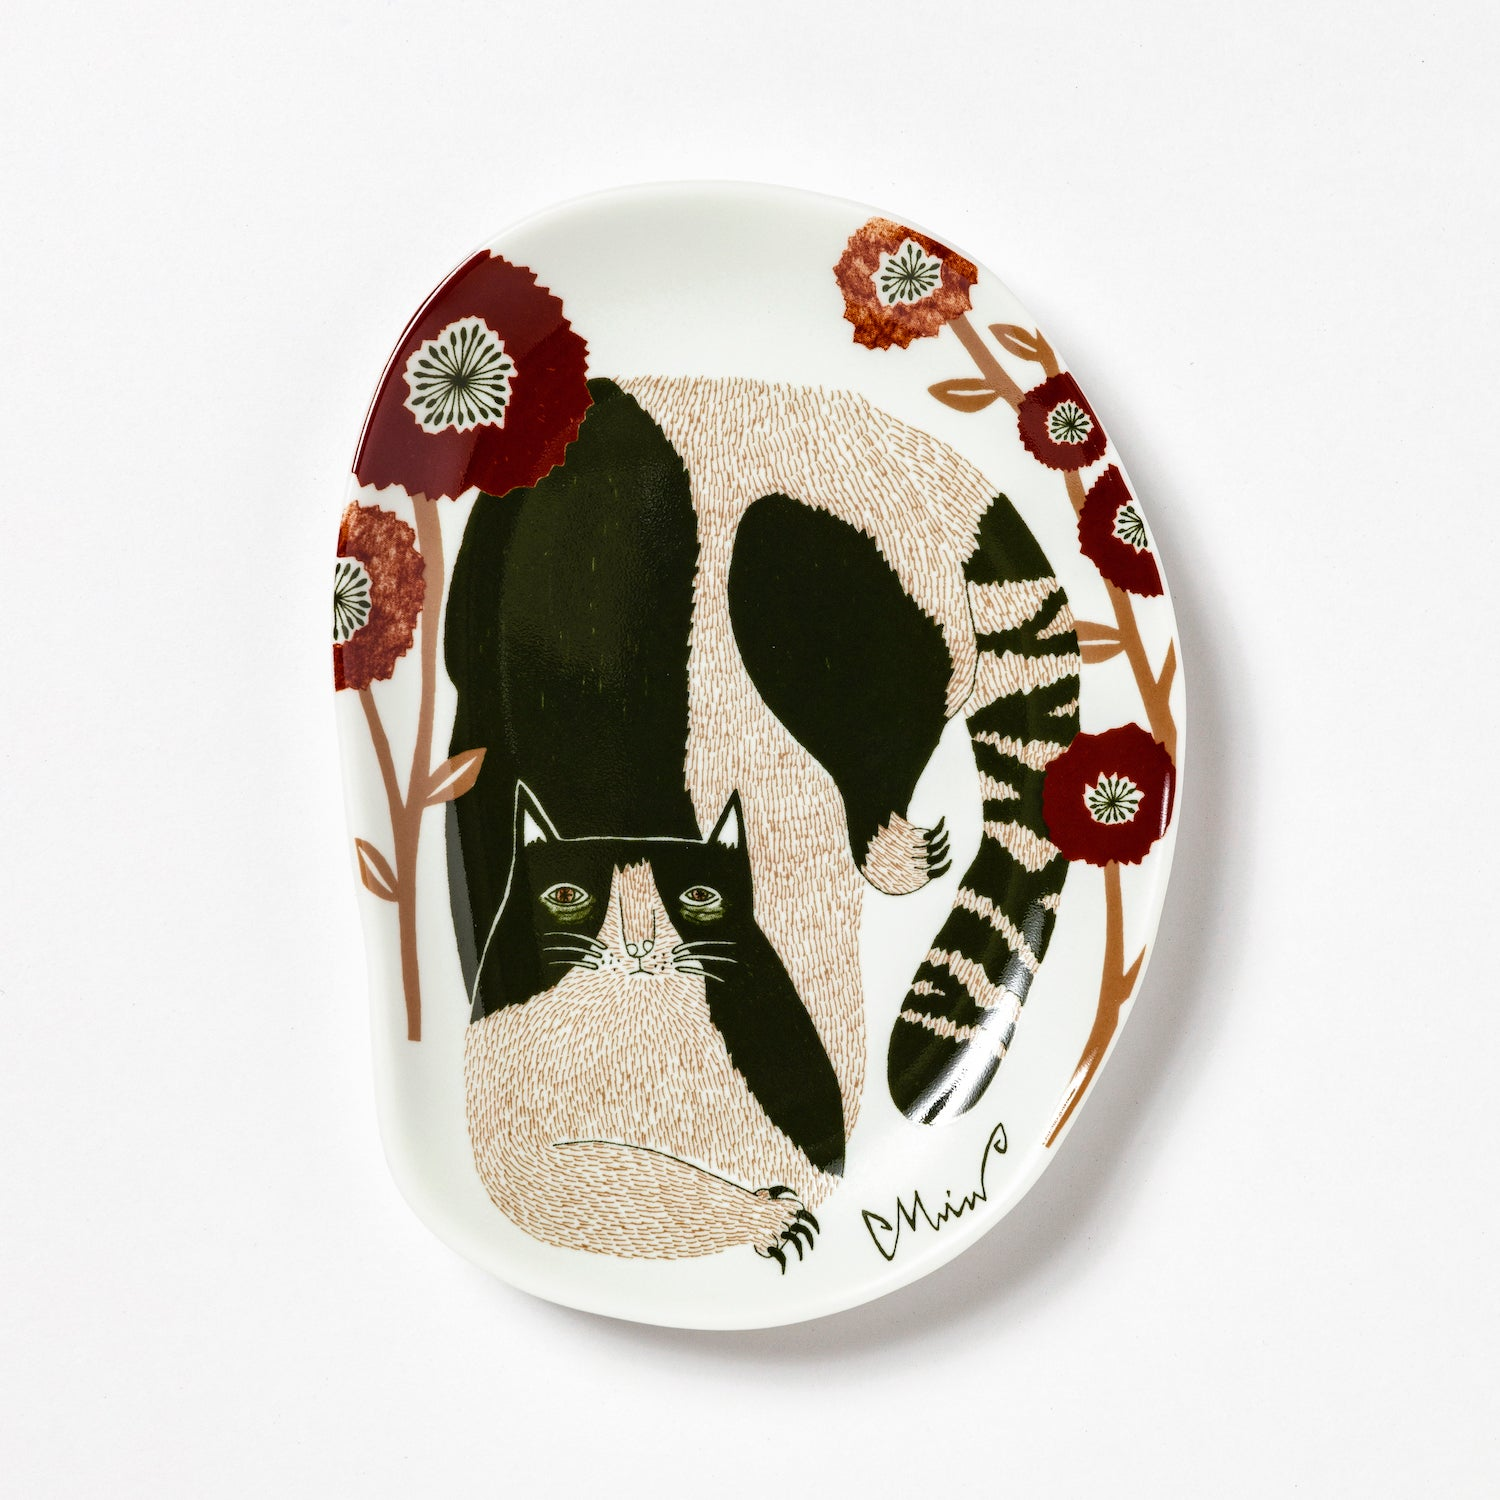 森田Miw 插畫瓷碟 - 貓 Morita Miw Decorative Plate - Cat